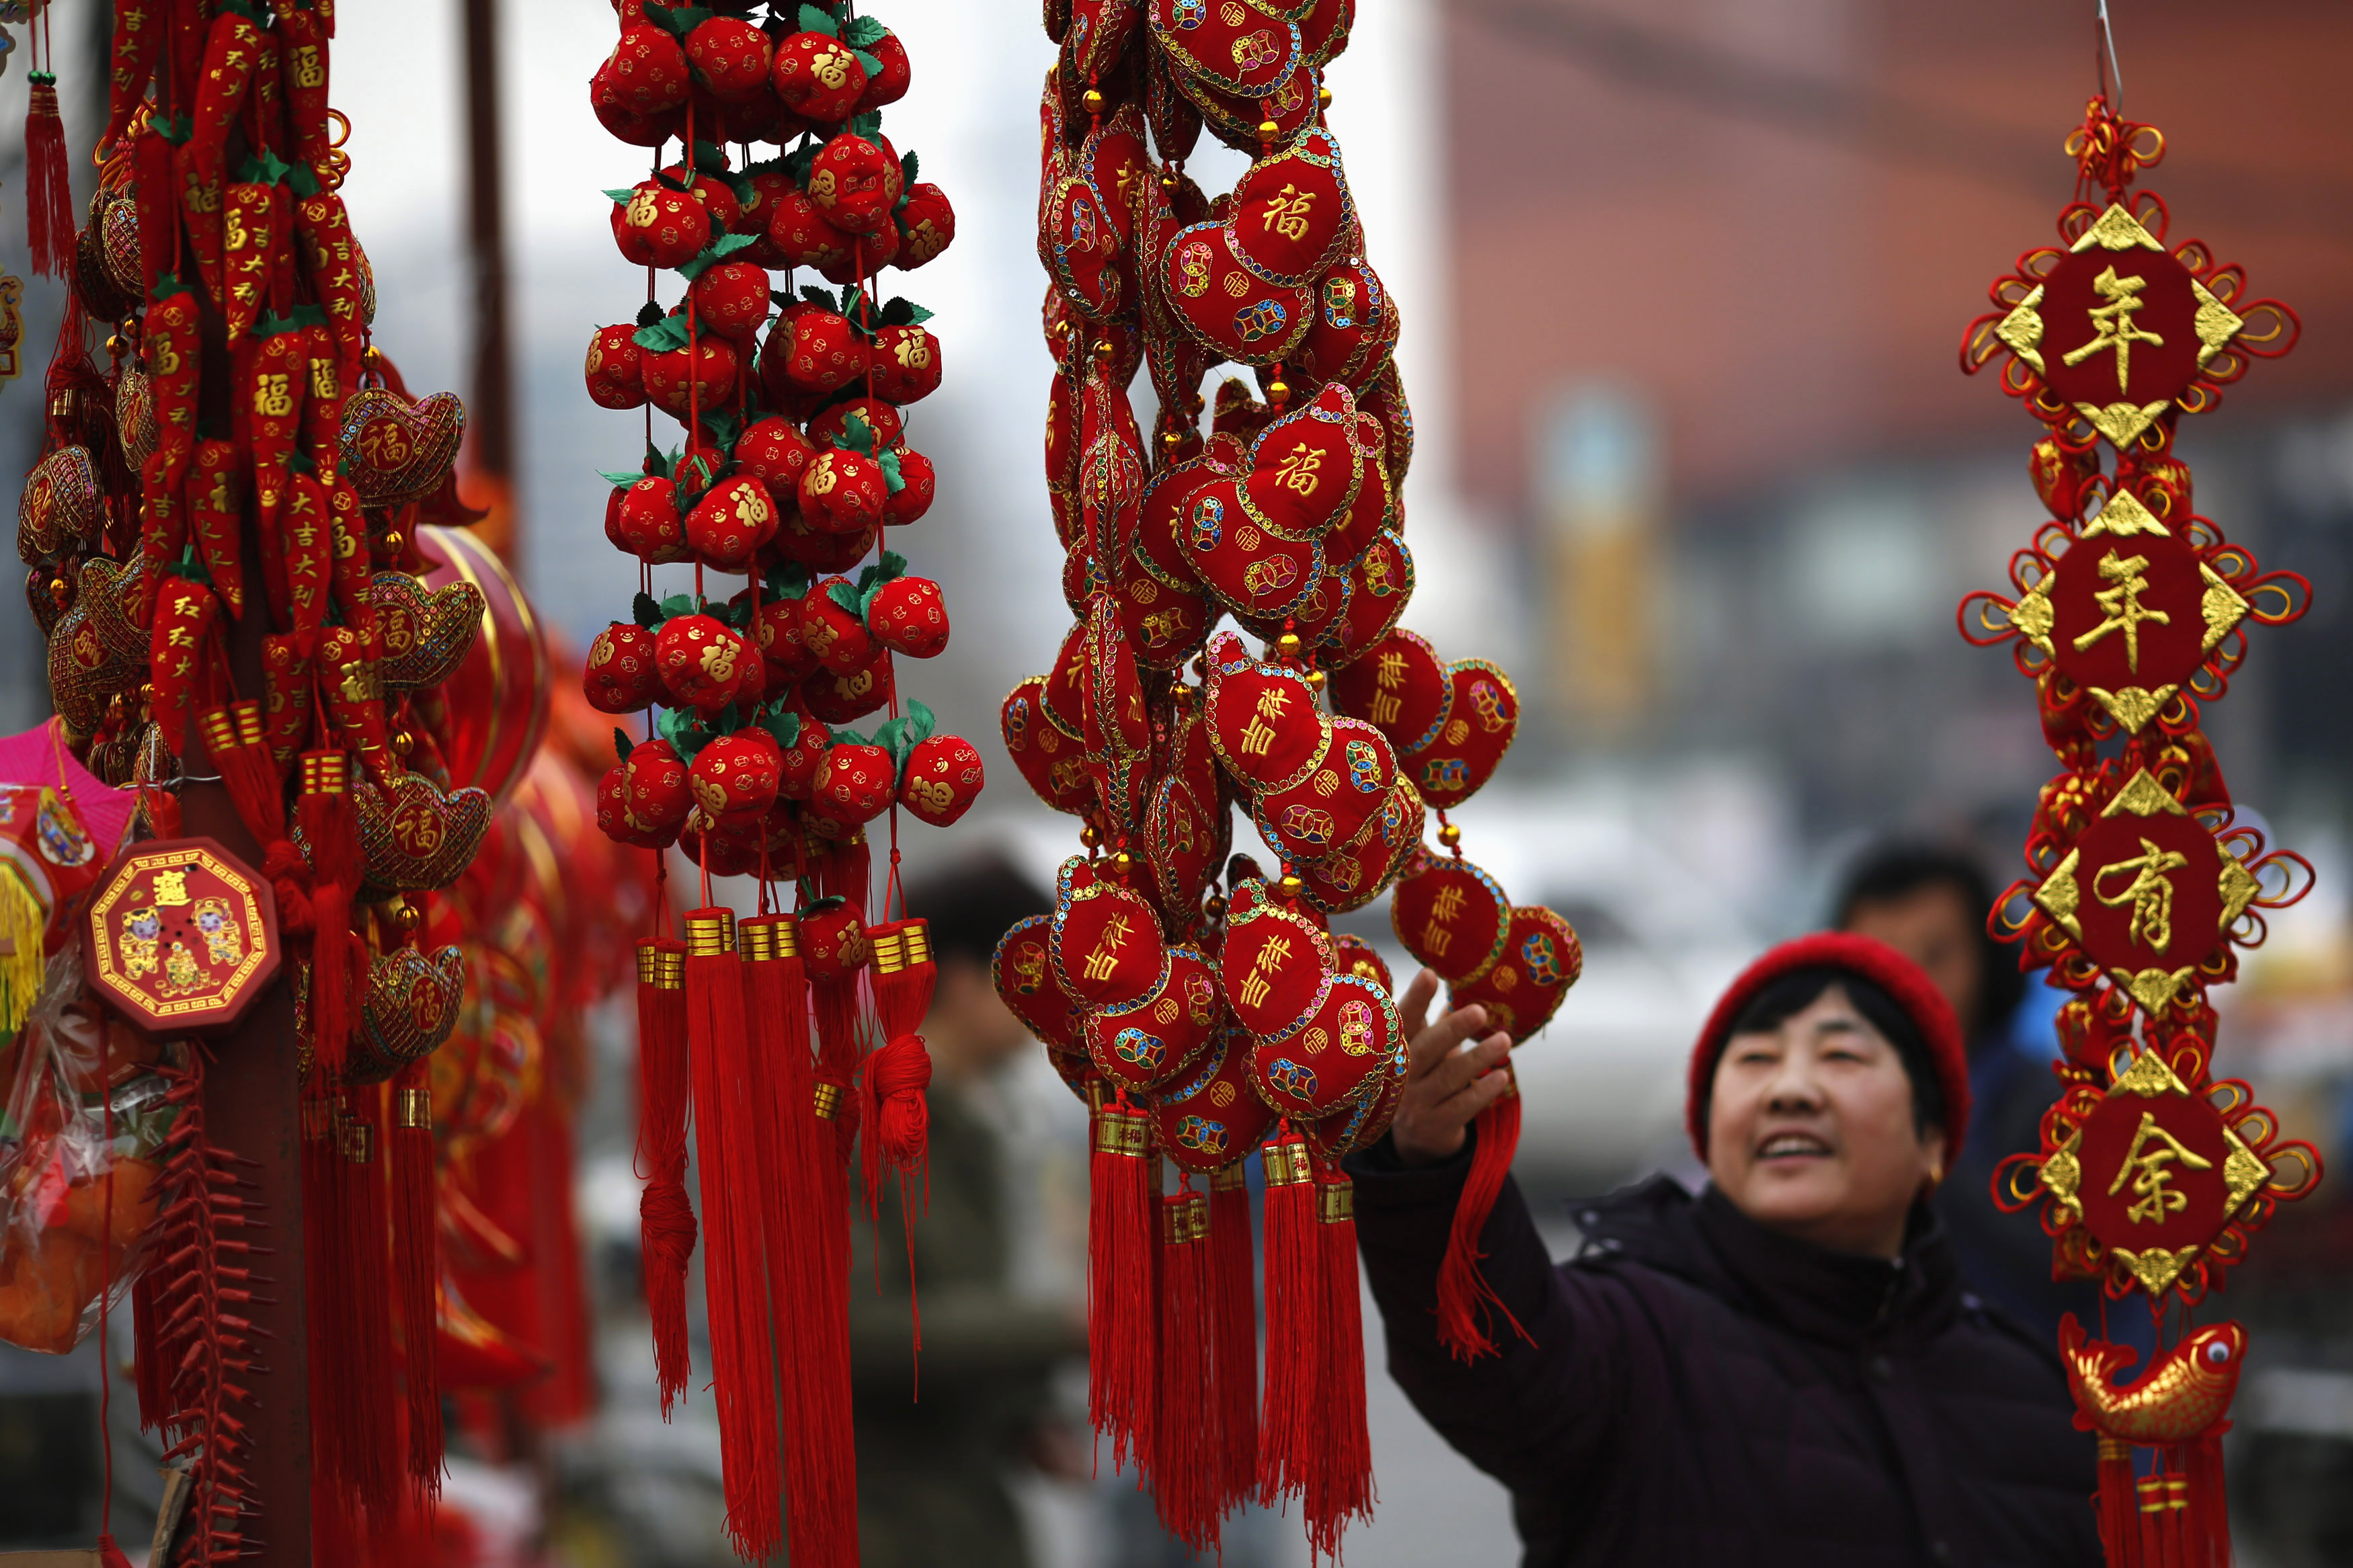 A woman looks at traditional decorations celebrating for the upcoming Chinese Lunar New Year at a market in Beijing February 6, 2015. Photo by Kim Kyung-Hoon/REUTERS.